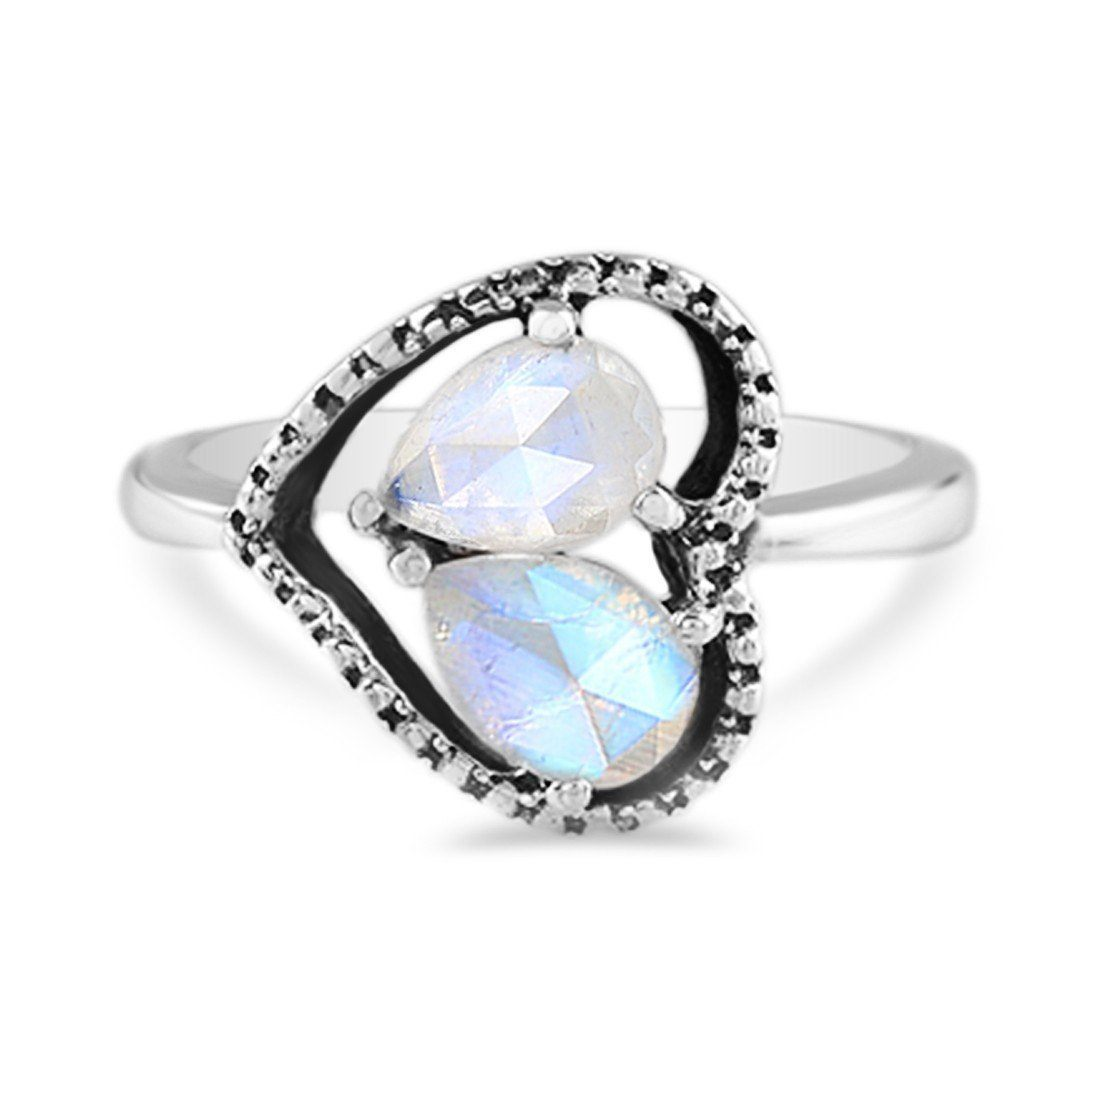 Moonstone Ring-Love and Devotion Sale Item 925 SILVER & MOONSTONE